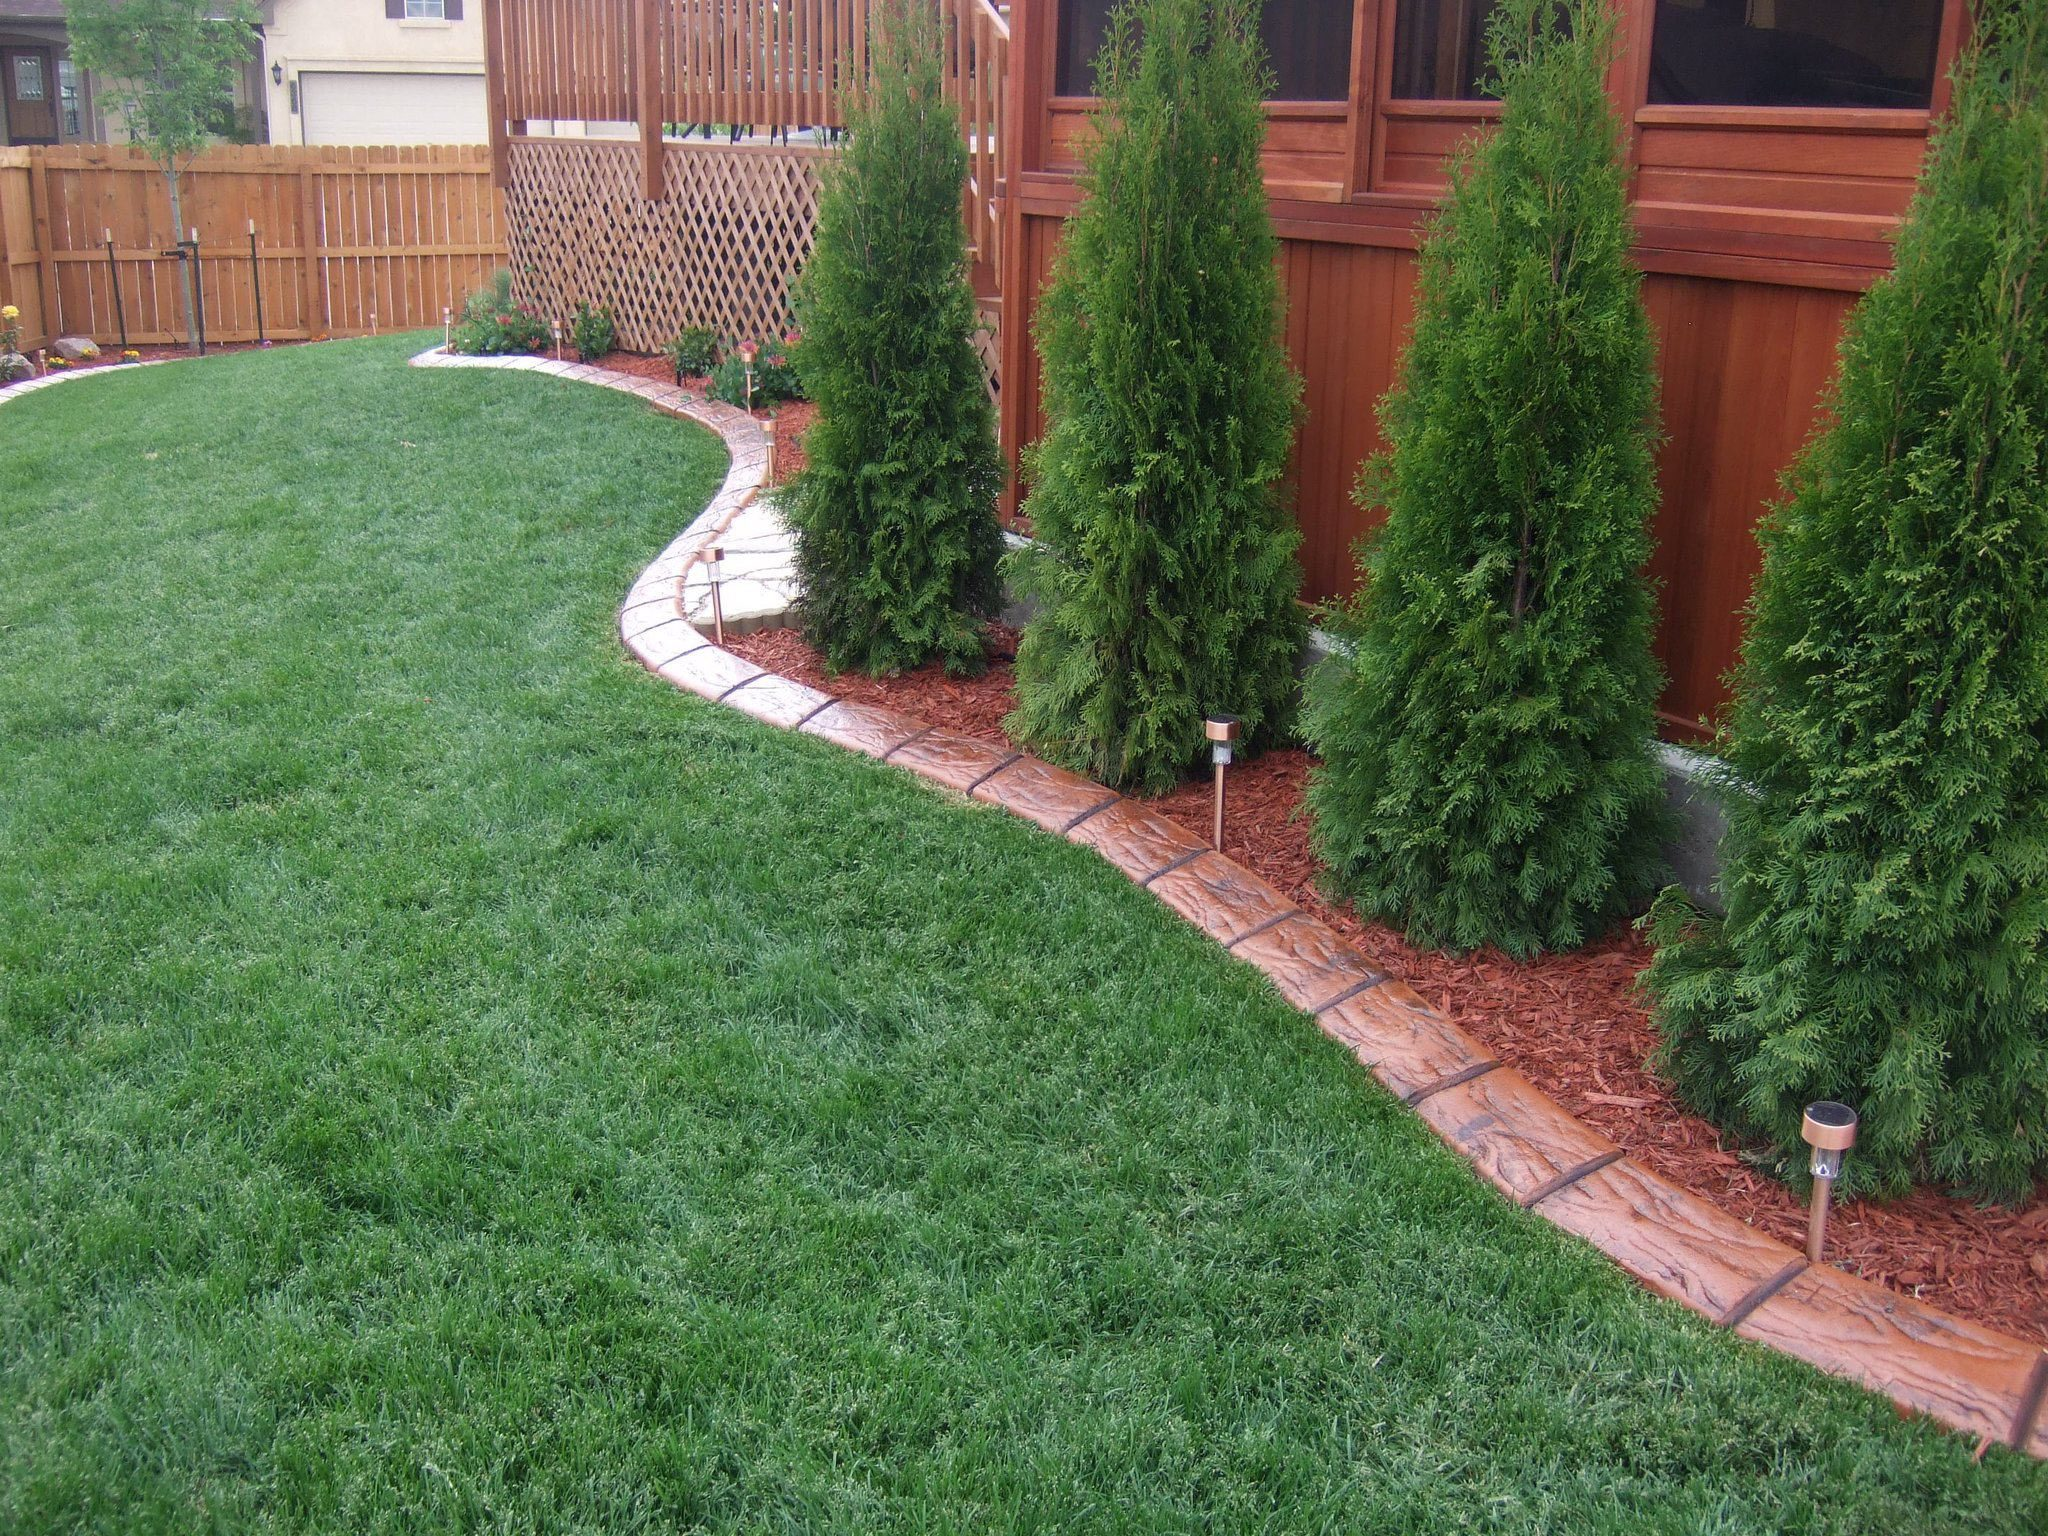 Decorative concrete Curbing with trees and plants.